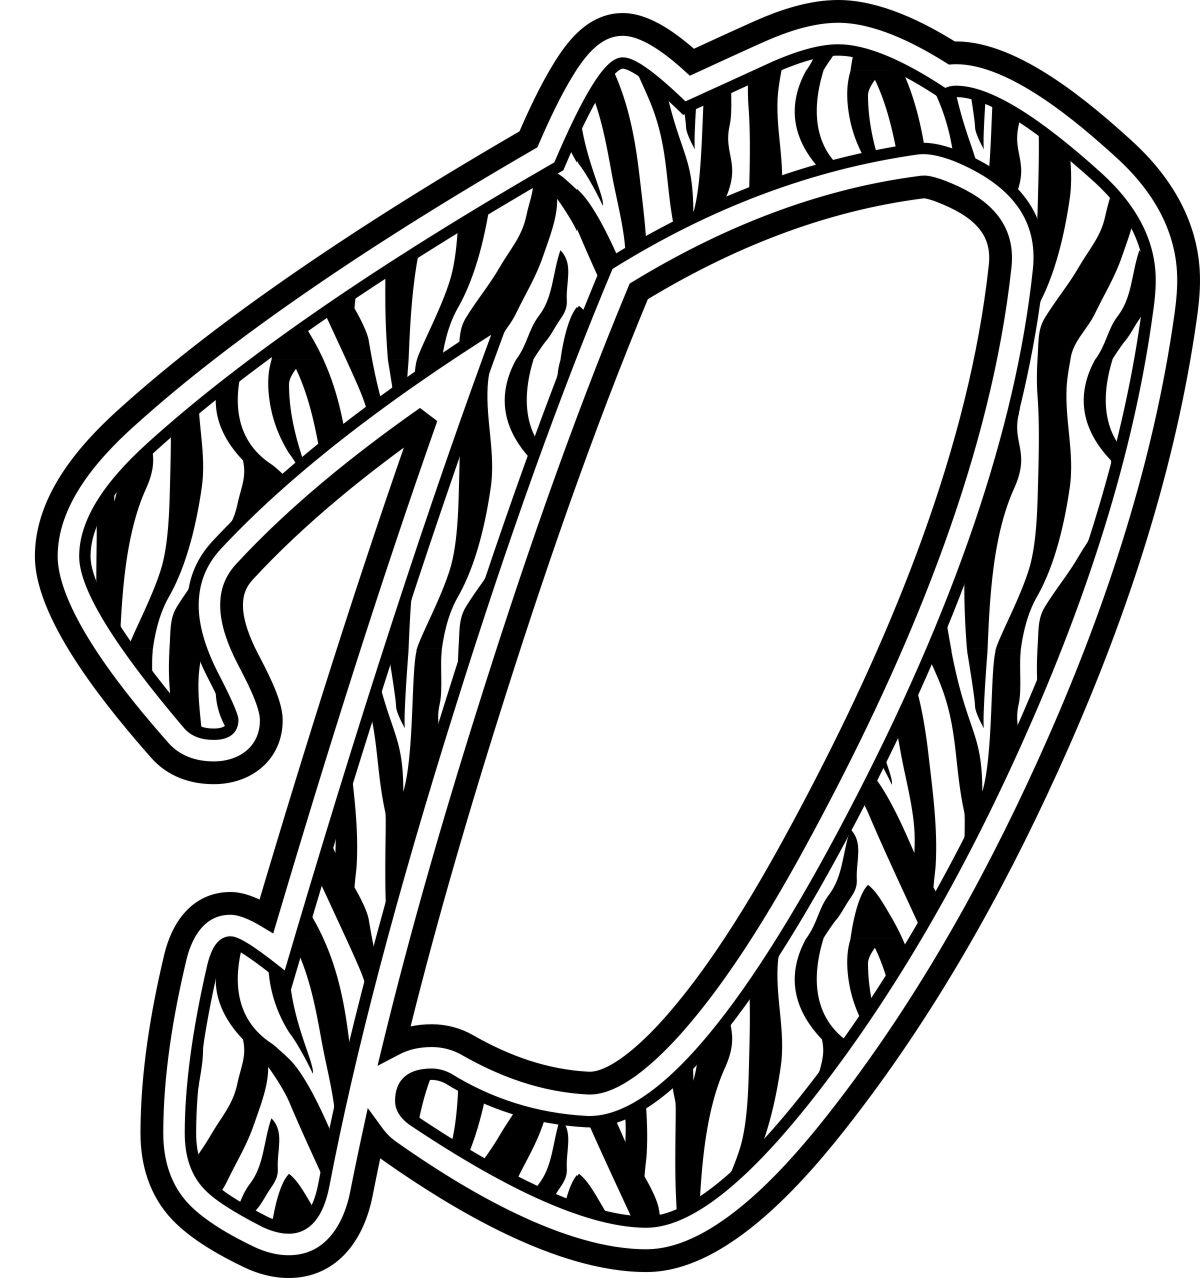 Letter N Zebra Print Colouring Pages